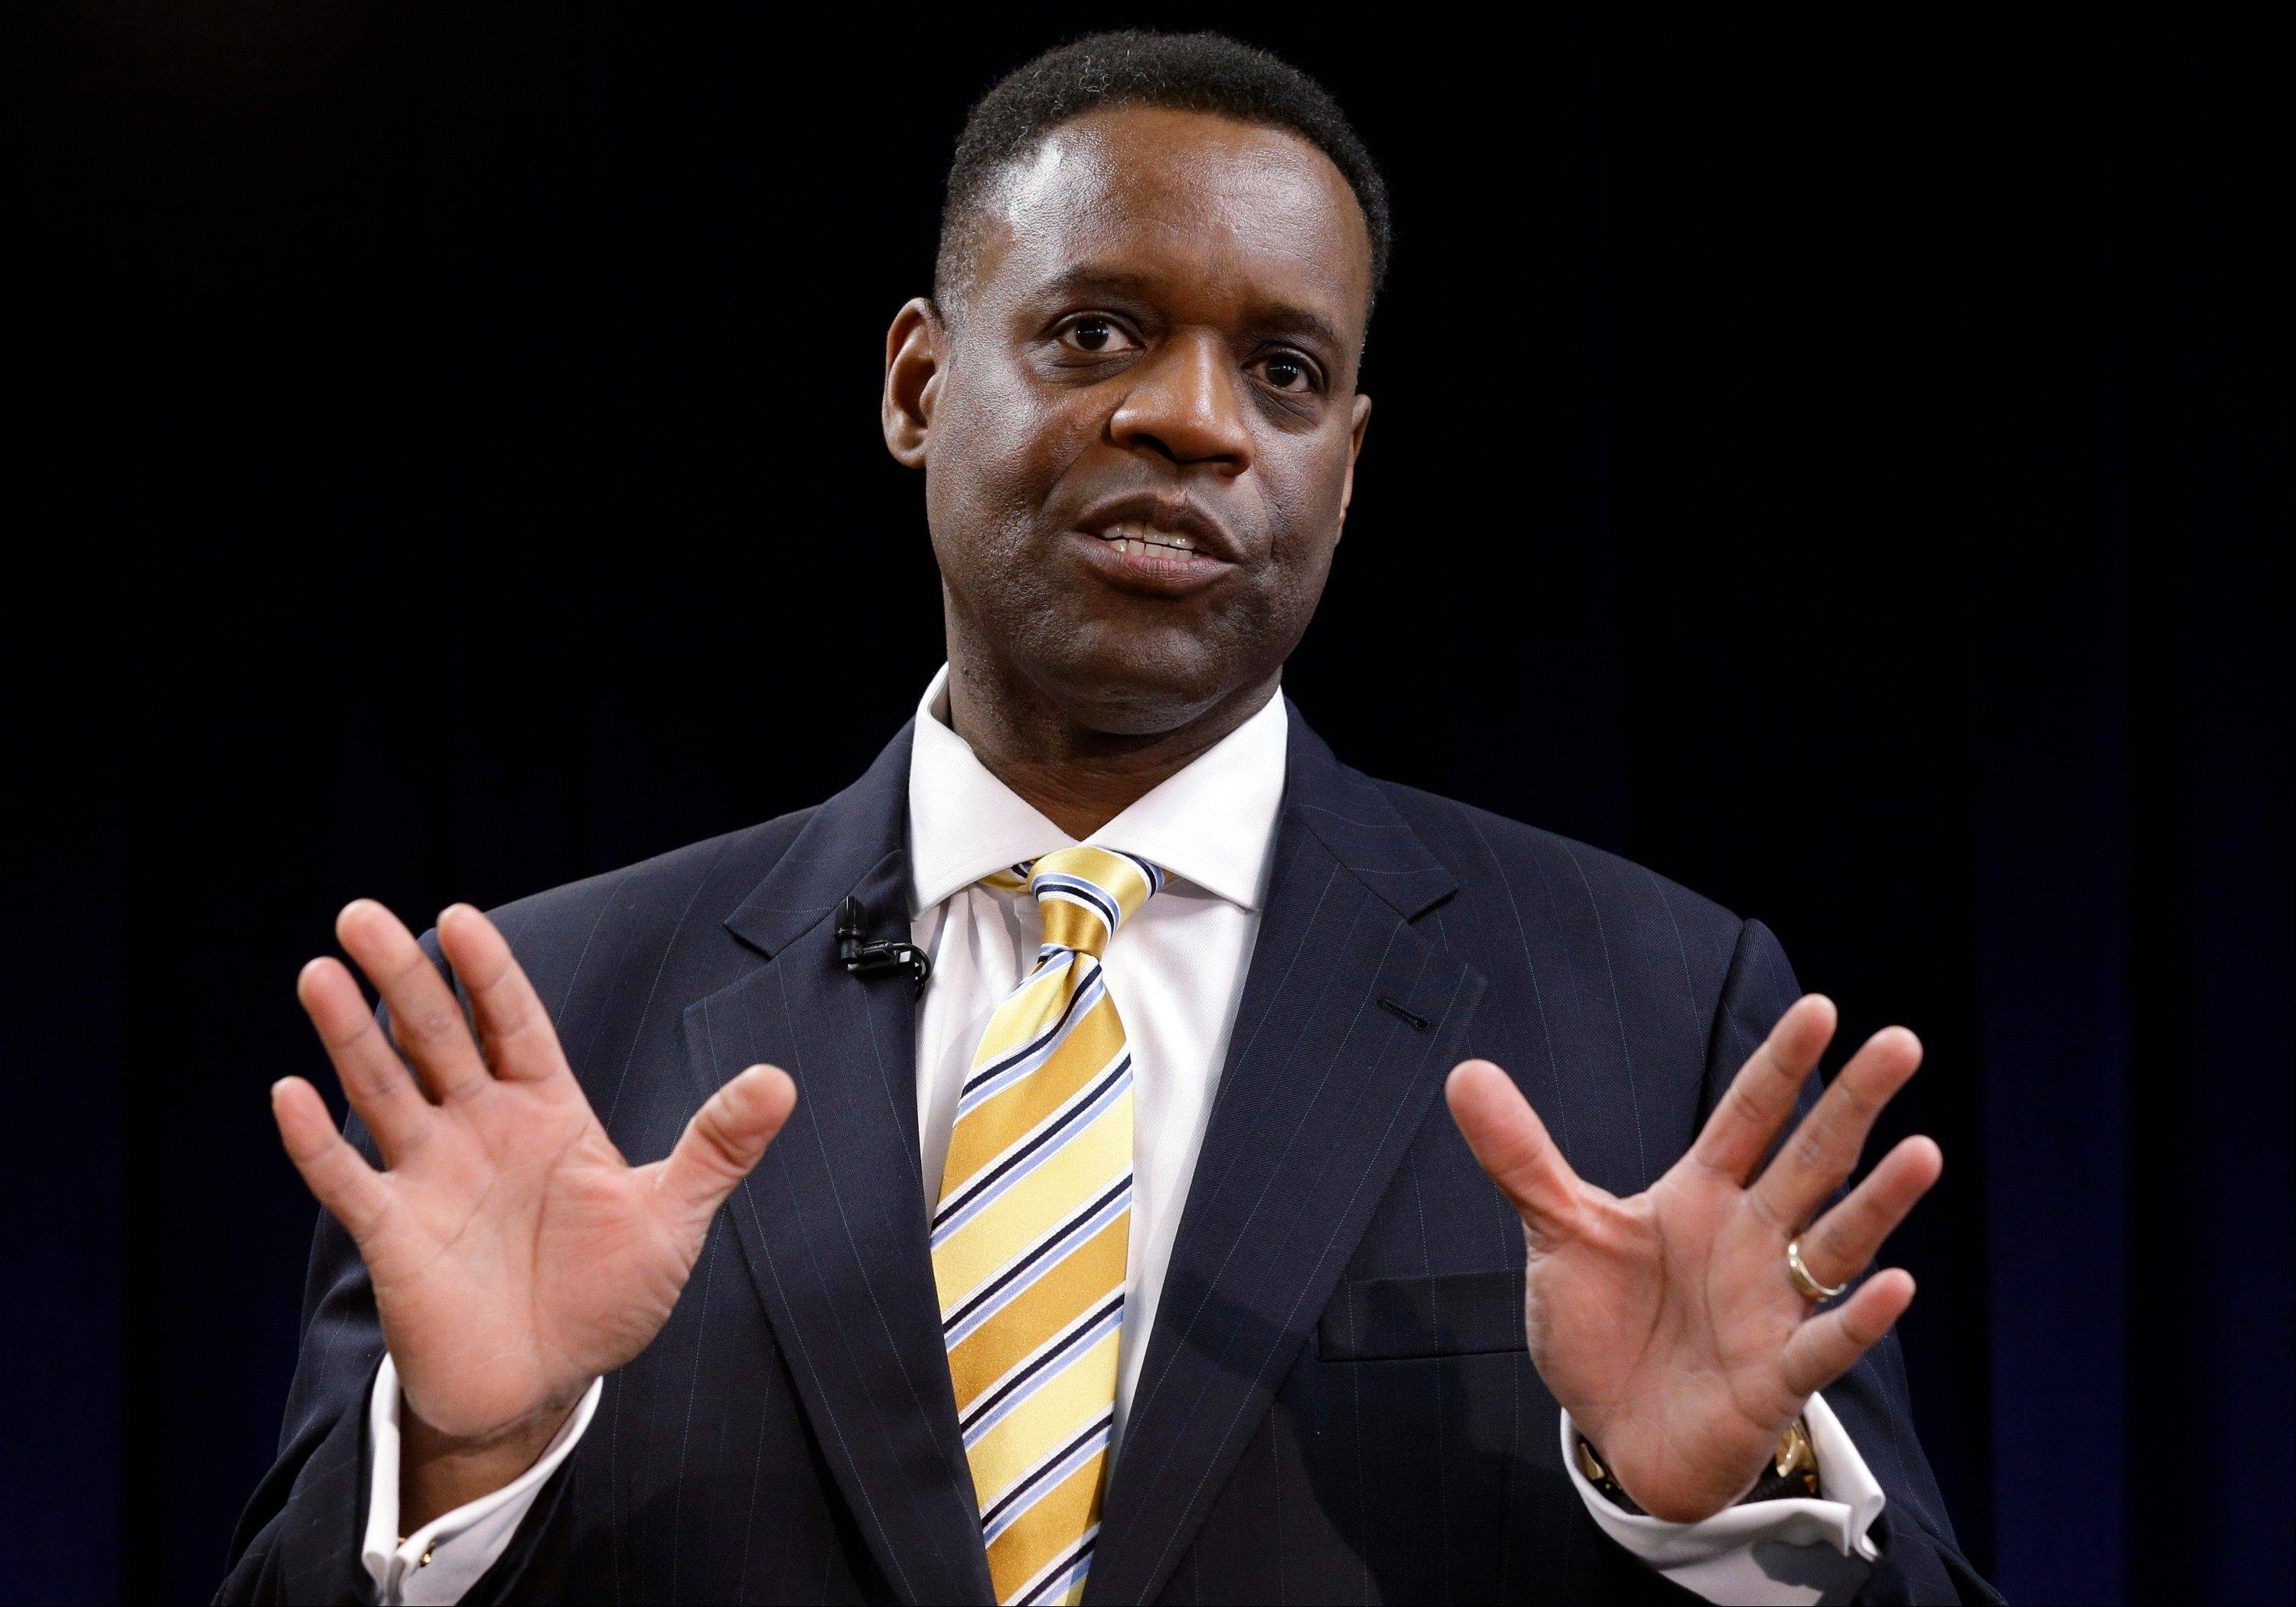 Washington-based attorney Kevyn Orr starts work Monday as Detroit's emergency manager and the turnaround expert. He says his first tasks will be reviewing the city's financial data and listening.